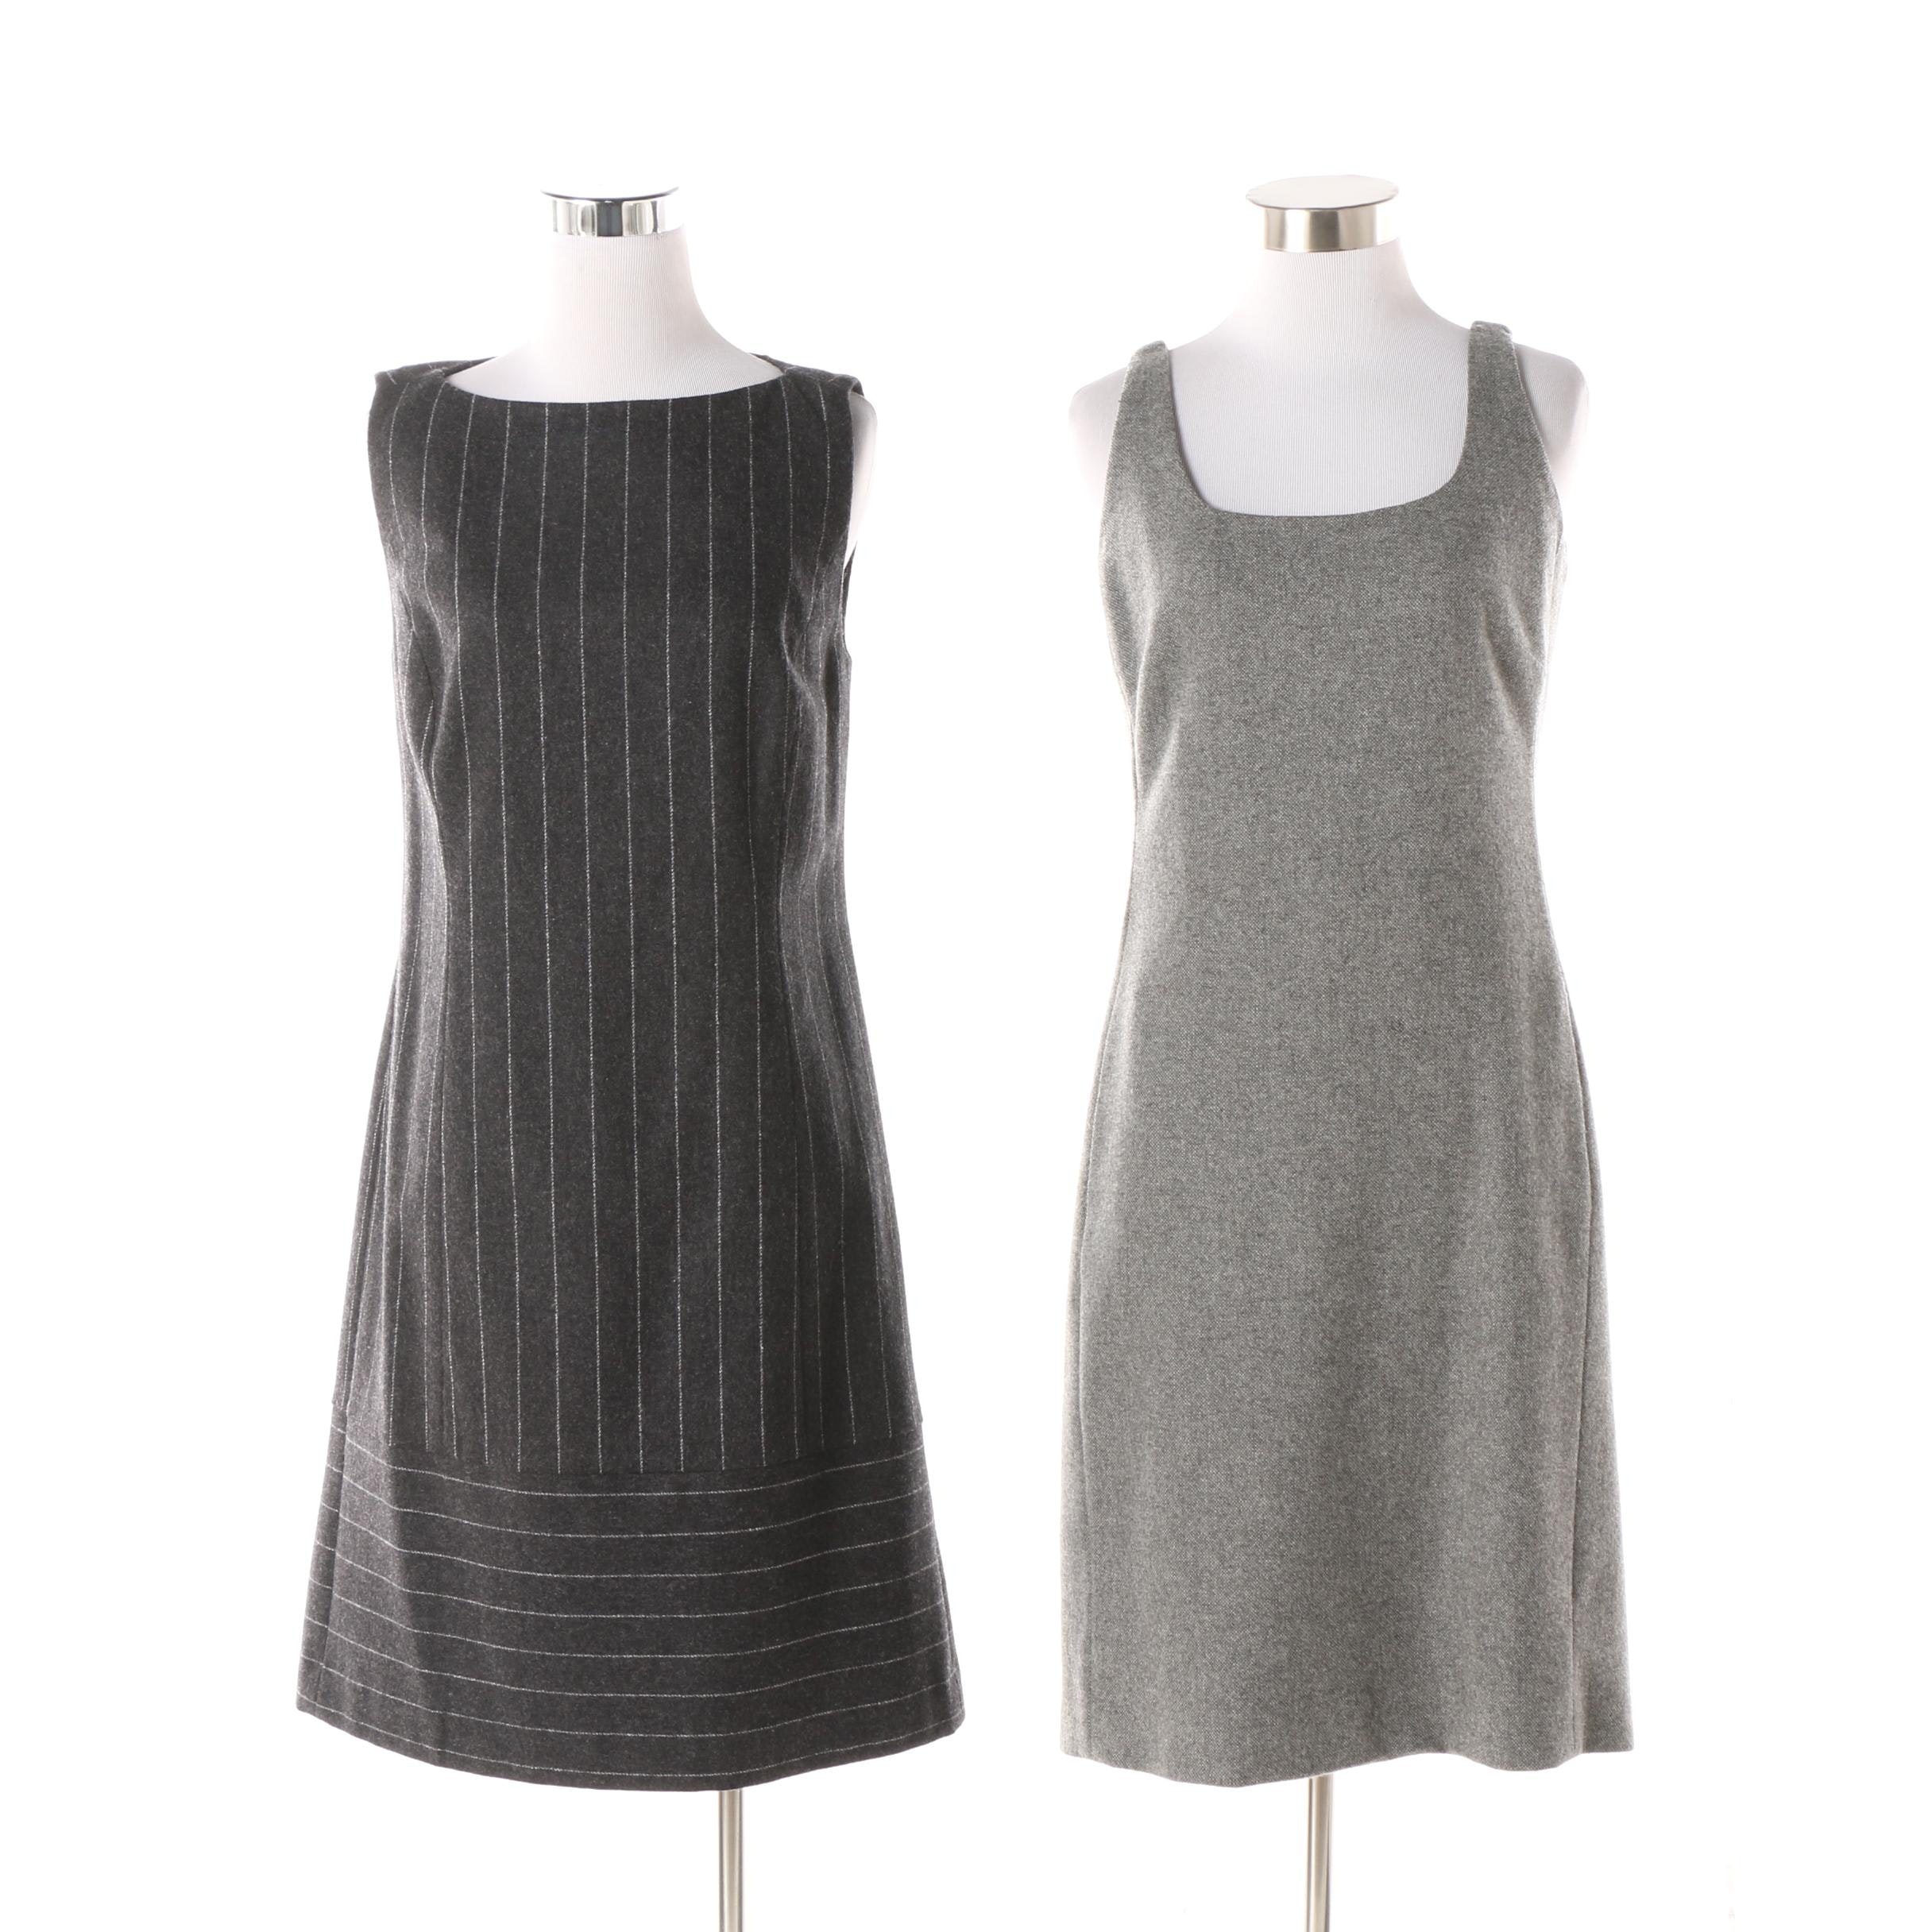 Charles Nolan Grey Pinstriped and Aeve Salt and Pepper Sleeveless Wool Dresses